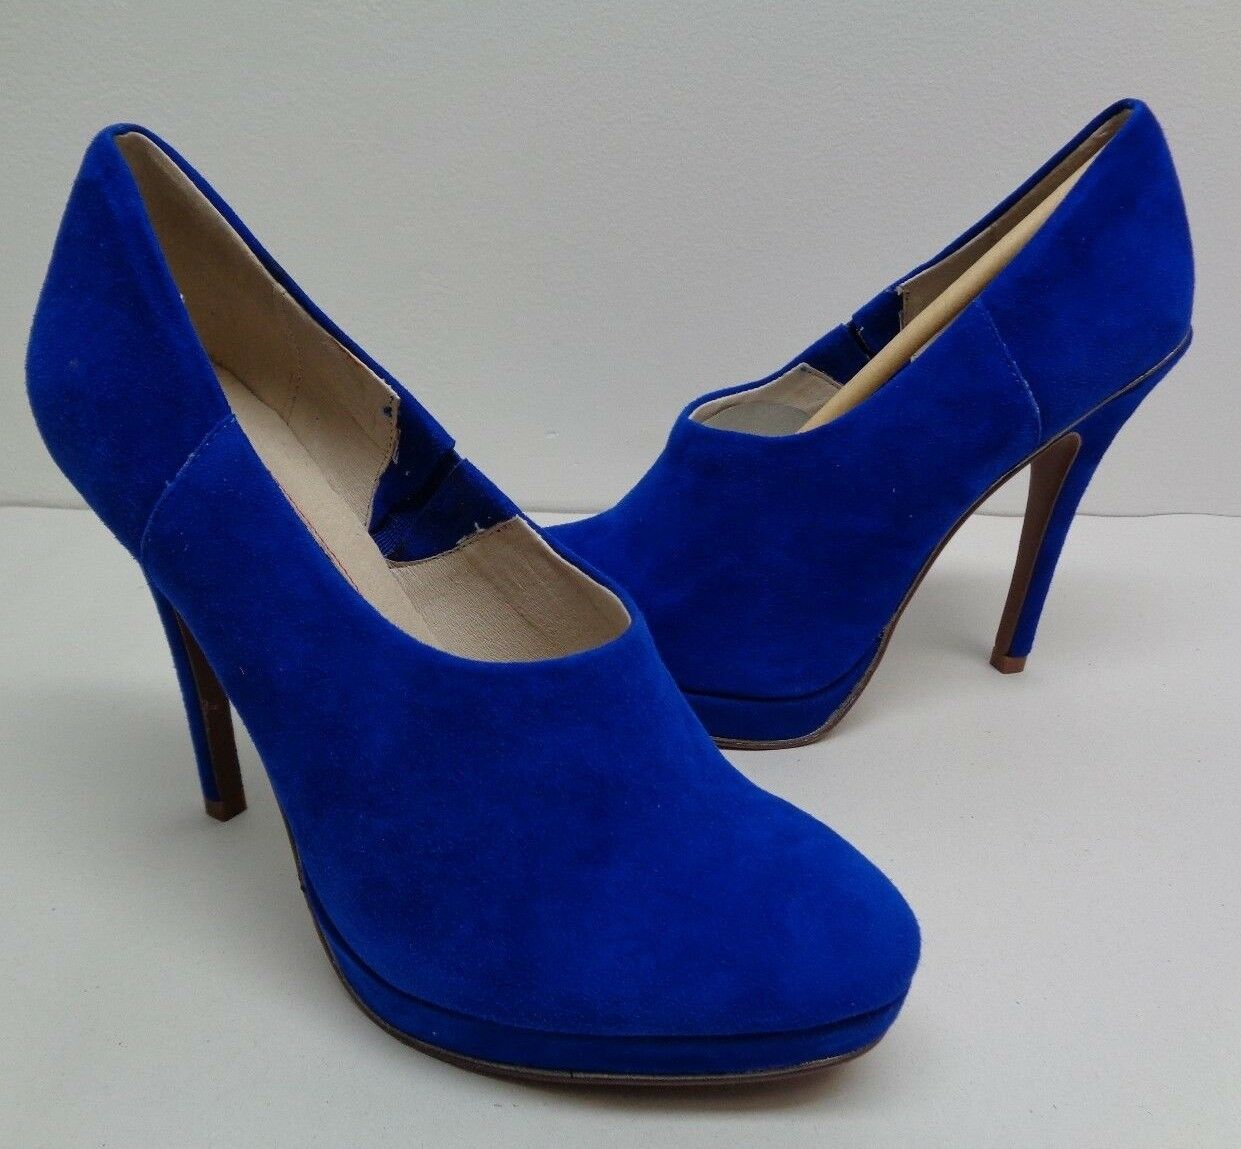 Juicy Couture Size 9 M EYLSSA Electric bluee Suede Suede Suede Heels Pumps New Womens shoes 402969